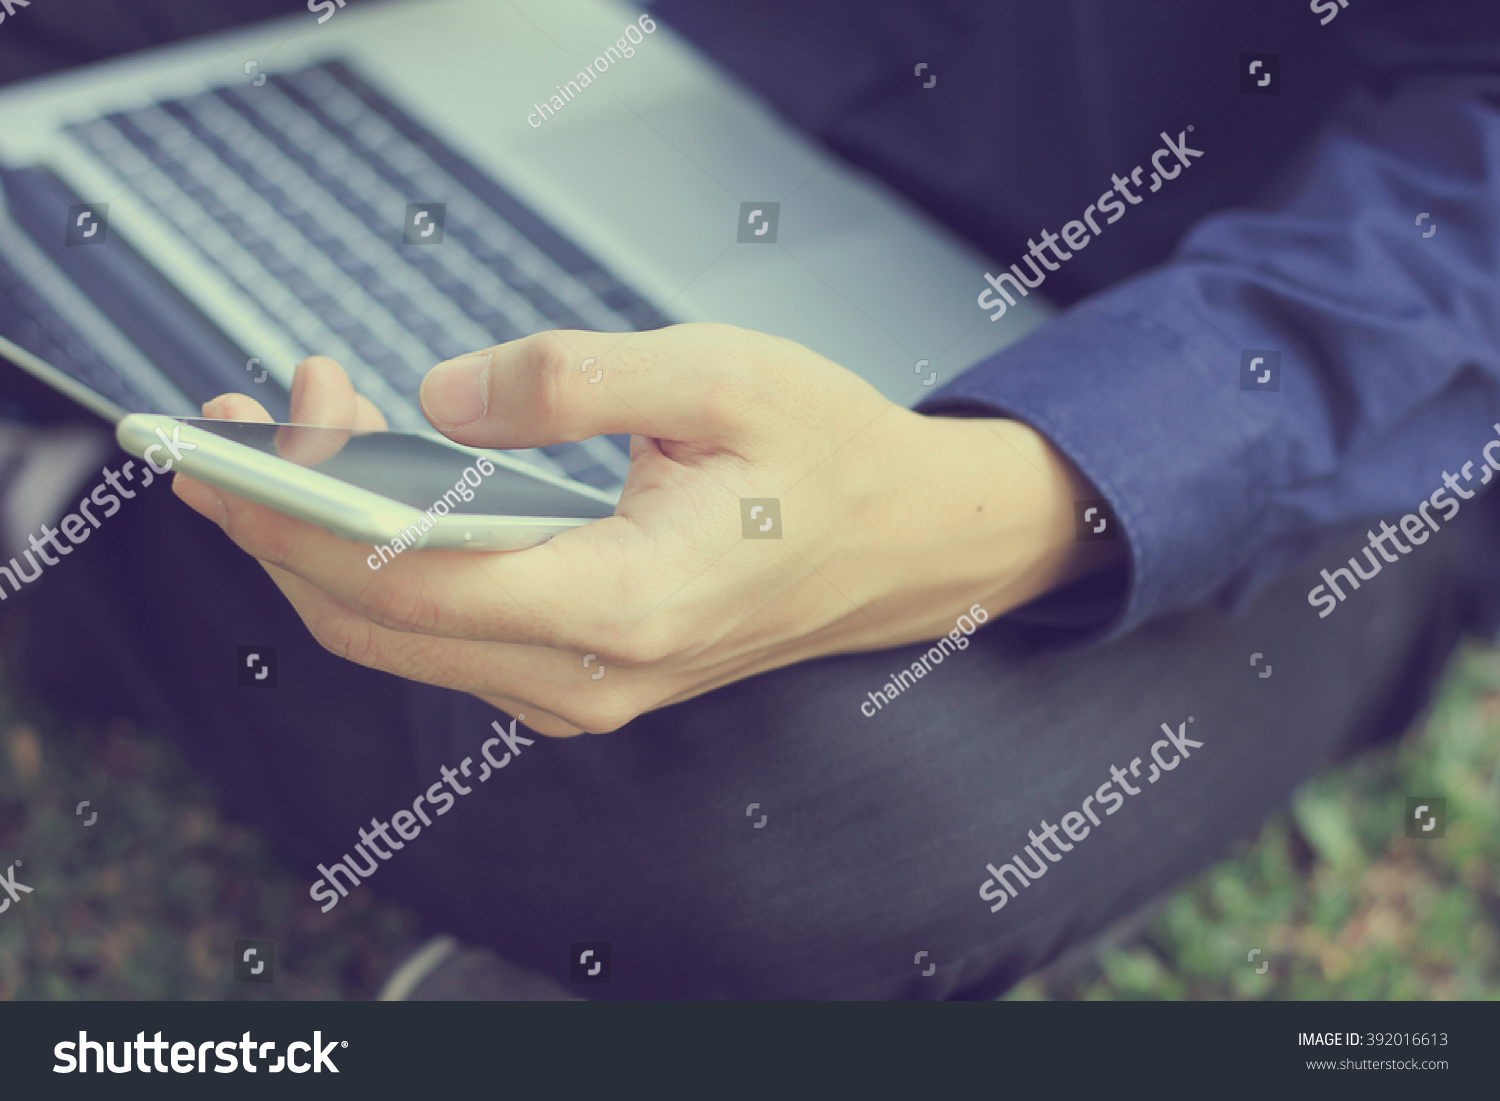 User Businessman Hold Smart Phone Texting Stock Photo 392016613 ...